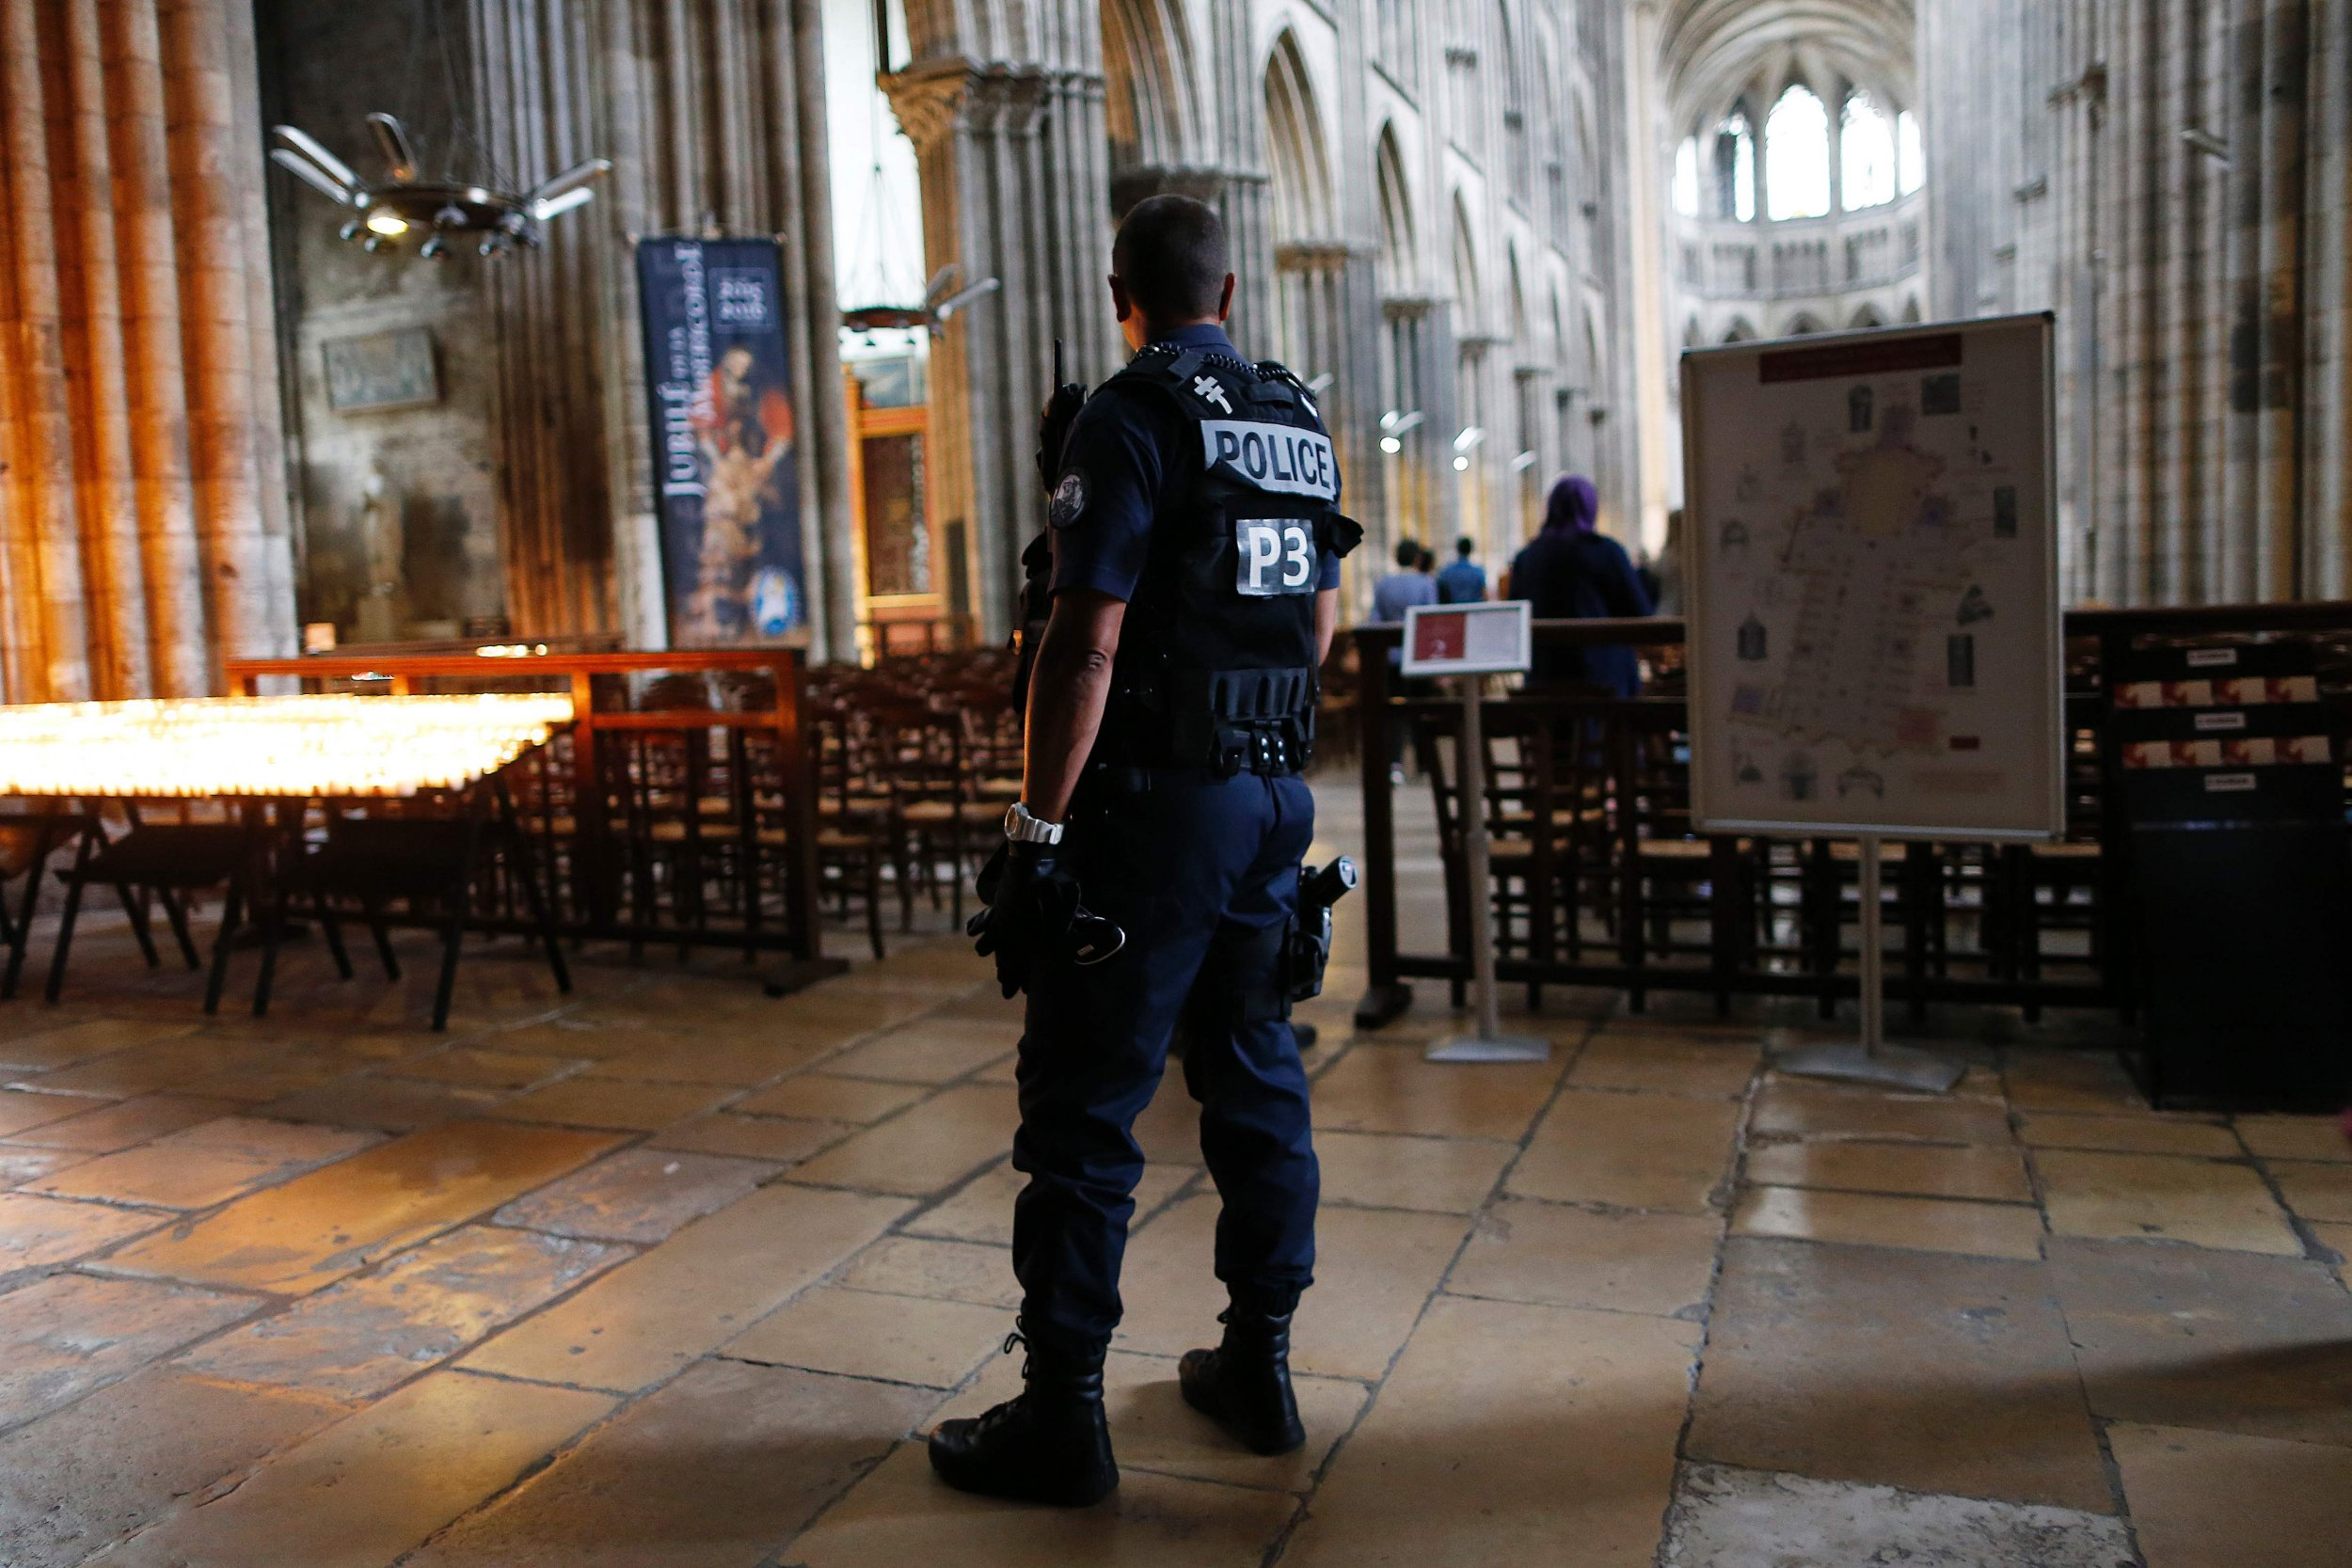 """TOPSHOT - A policeman stands guard while people arrive for a Mass at the Rouen Cathedral, on July 27, 2016 in Rouen, to pay tribute to the priest Jacques Hamel, killed on July 26 in a church of Saint-Etienne-du-Rouvray during a hostage-taking claimed by Islamic State group. France probes an attack on a church in which two men described by the Islamic State group as its """"soldiers"""" slit the throat of a priest. An elderly priest had his throat slit in a church in northern France on July 26 after two men stormed the building and took hostages. The attack in the Normandy town of Saint-Etienne-du-Rouvray came as France was still coming to terms with the Bastille Day killings in Nice claimed by the Islamic State group. / AFP PHOTO / CHARLY TRIBALLEAUCHARLY TRIBALLEAU/AFP/Getty Images"""